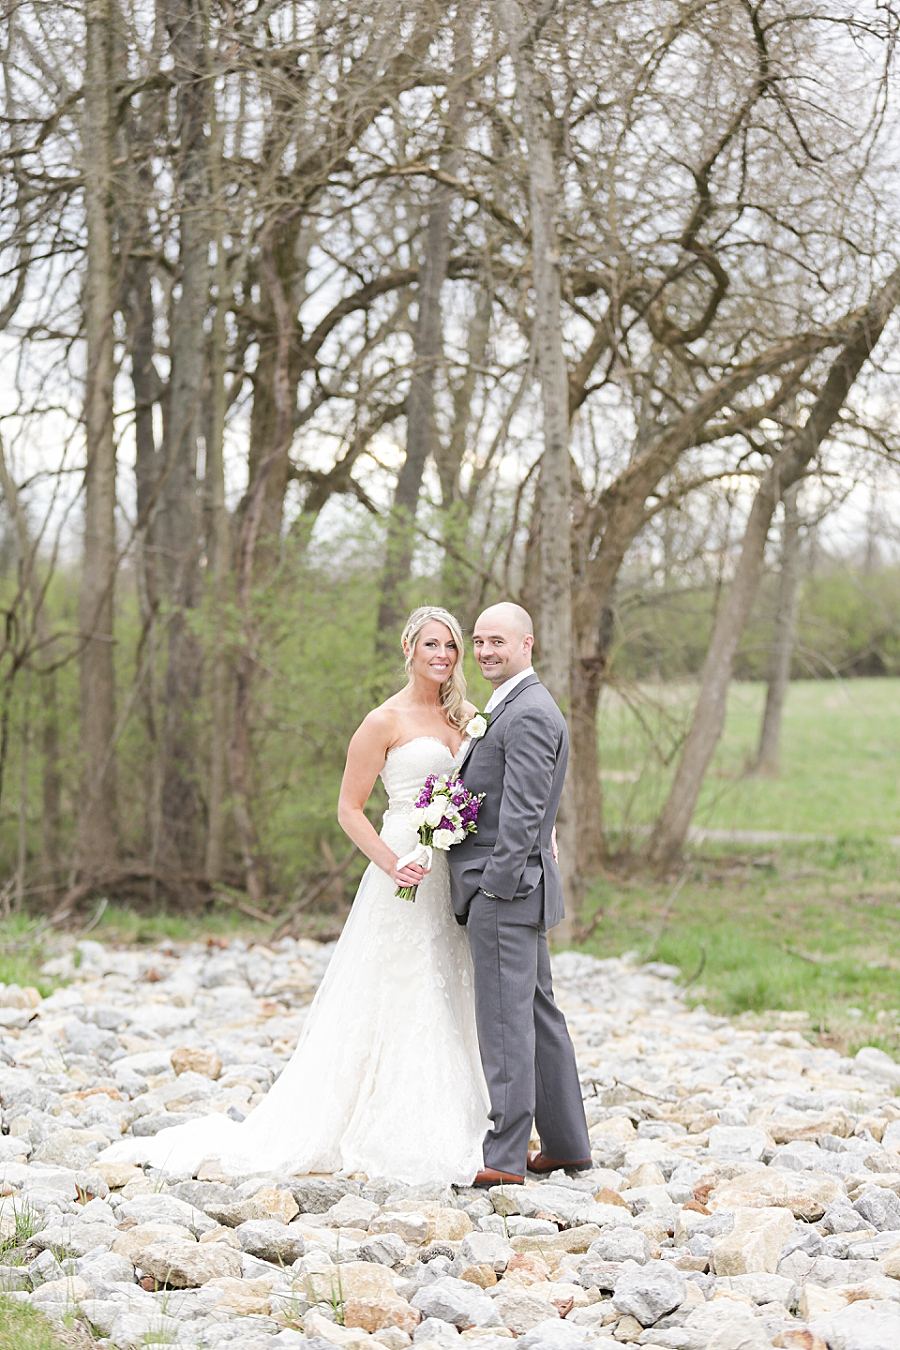 Cincinnati Wedding Photographer_We Are A Story_Kristen & Corey_2671.jpg